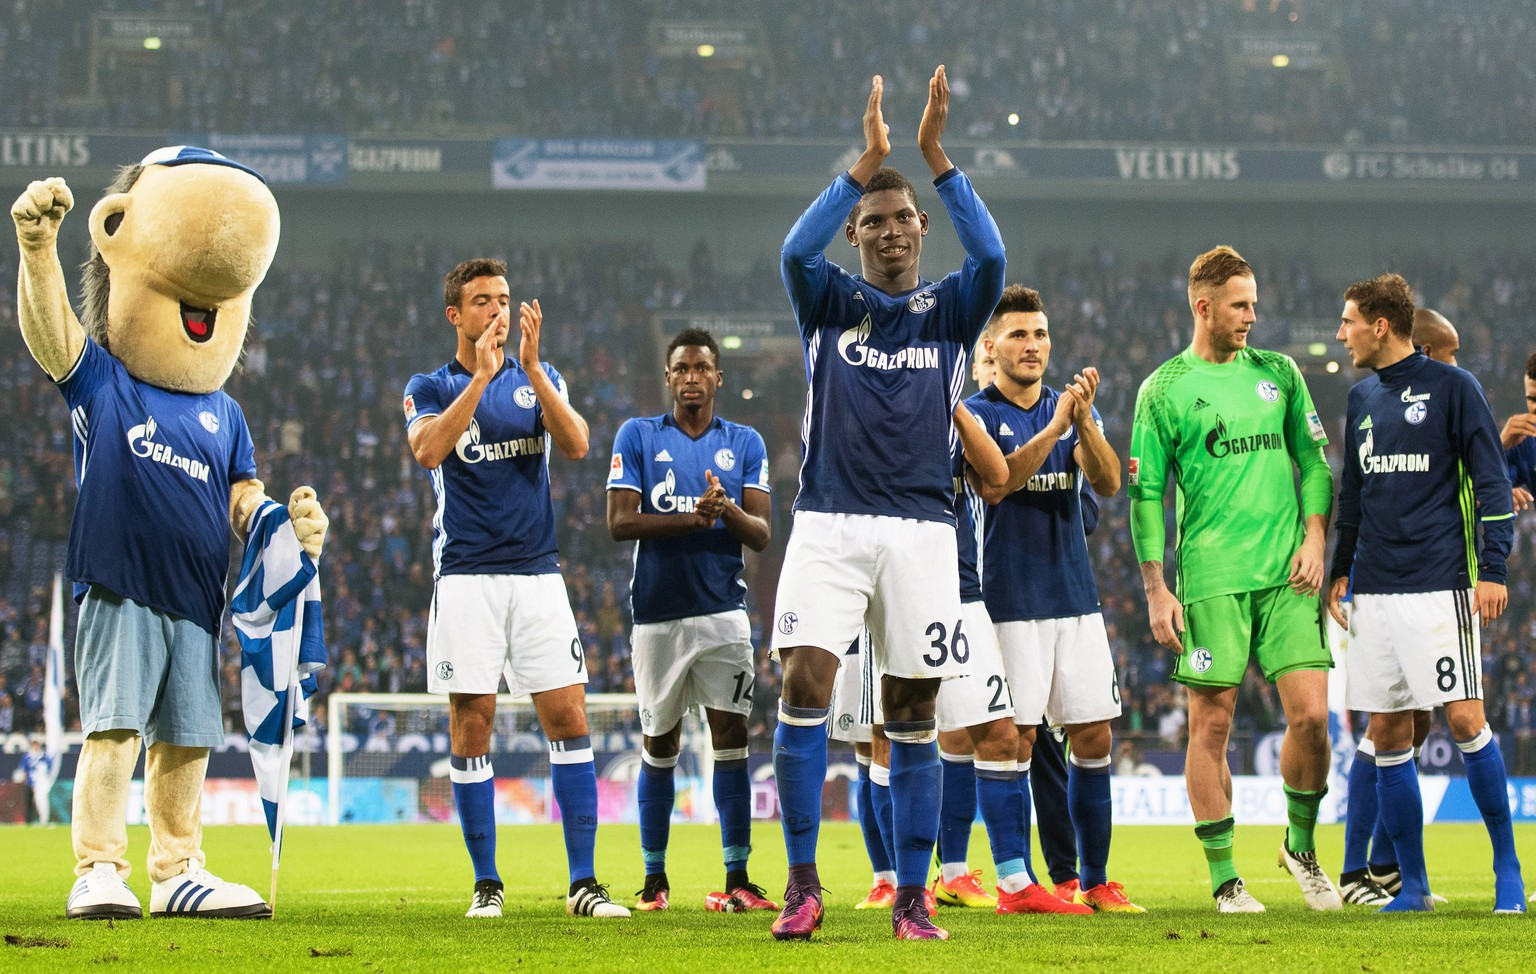 epa05567140 Schalke's Breel Embolo (C) applauds fans after the German Bundesliga soccer match between FC Schalke 04 and Borussia Moenchengladbach in Gelsenkirchen, Germany, 02 October 2016. Schalke won 4-0.  EPA/BERND THISSEN (EMBARGO CONDITIONS - ATTENTION - Due to the accreditation guidelines, the DFL only permits the publication and utilisation of up to 15 pictures per match on the internet and in online media during the match)